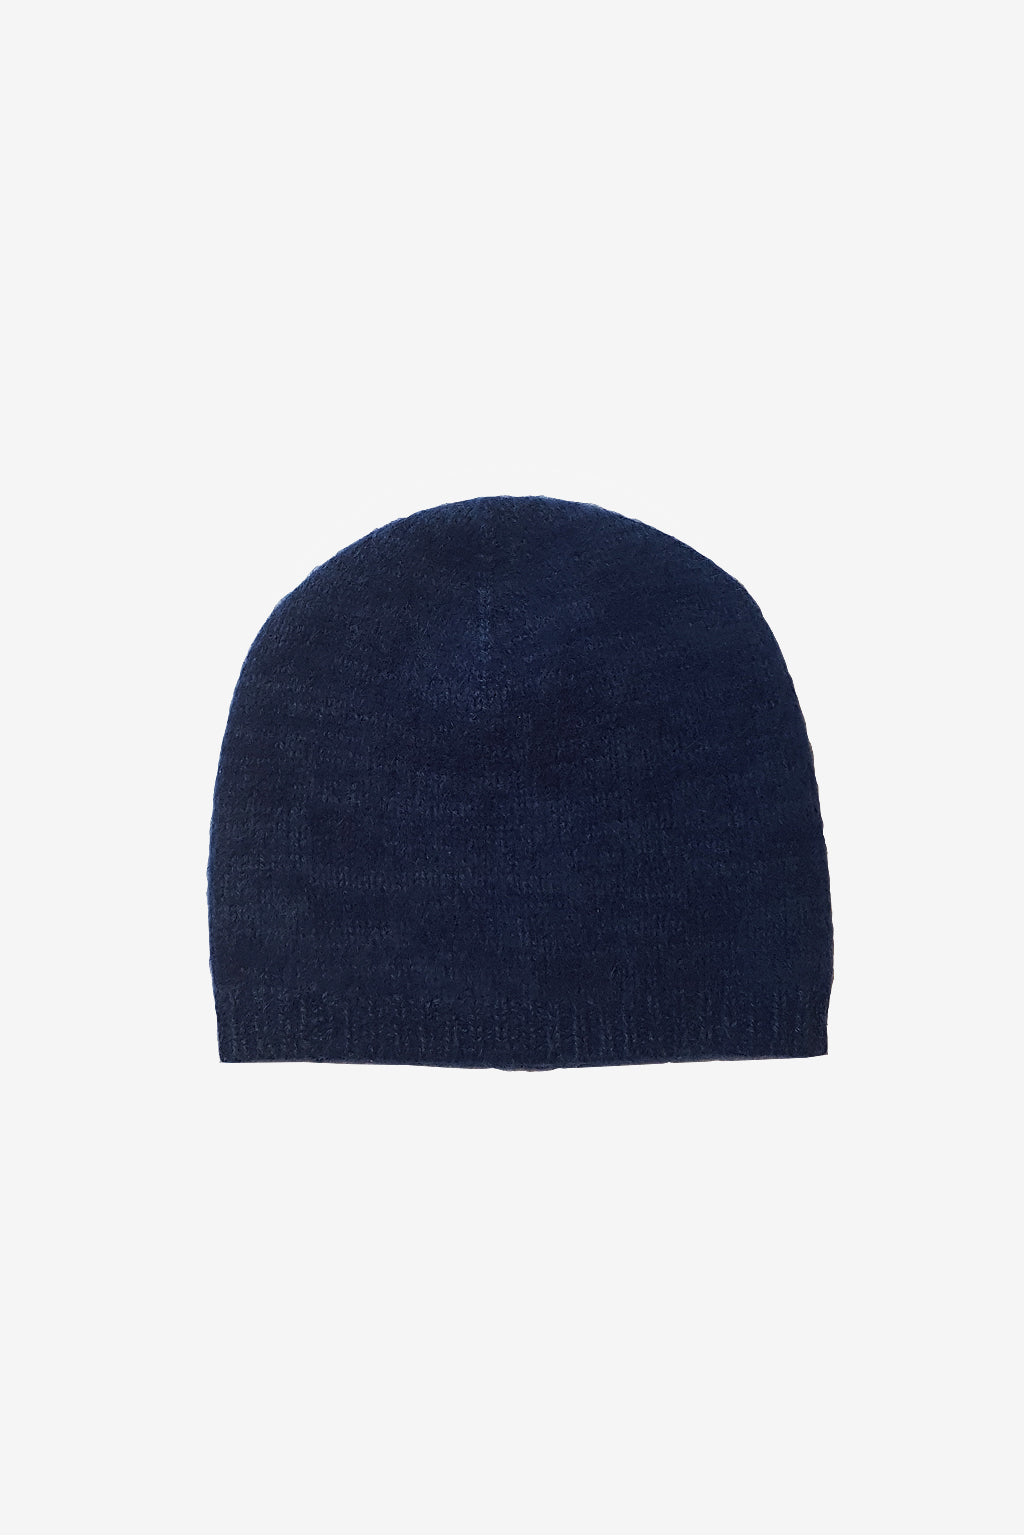 For Good: Multi Blue Children's beanie